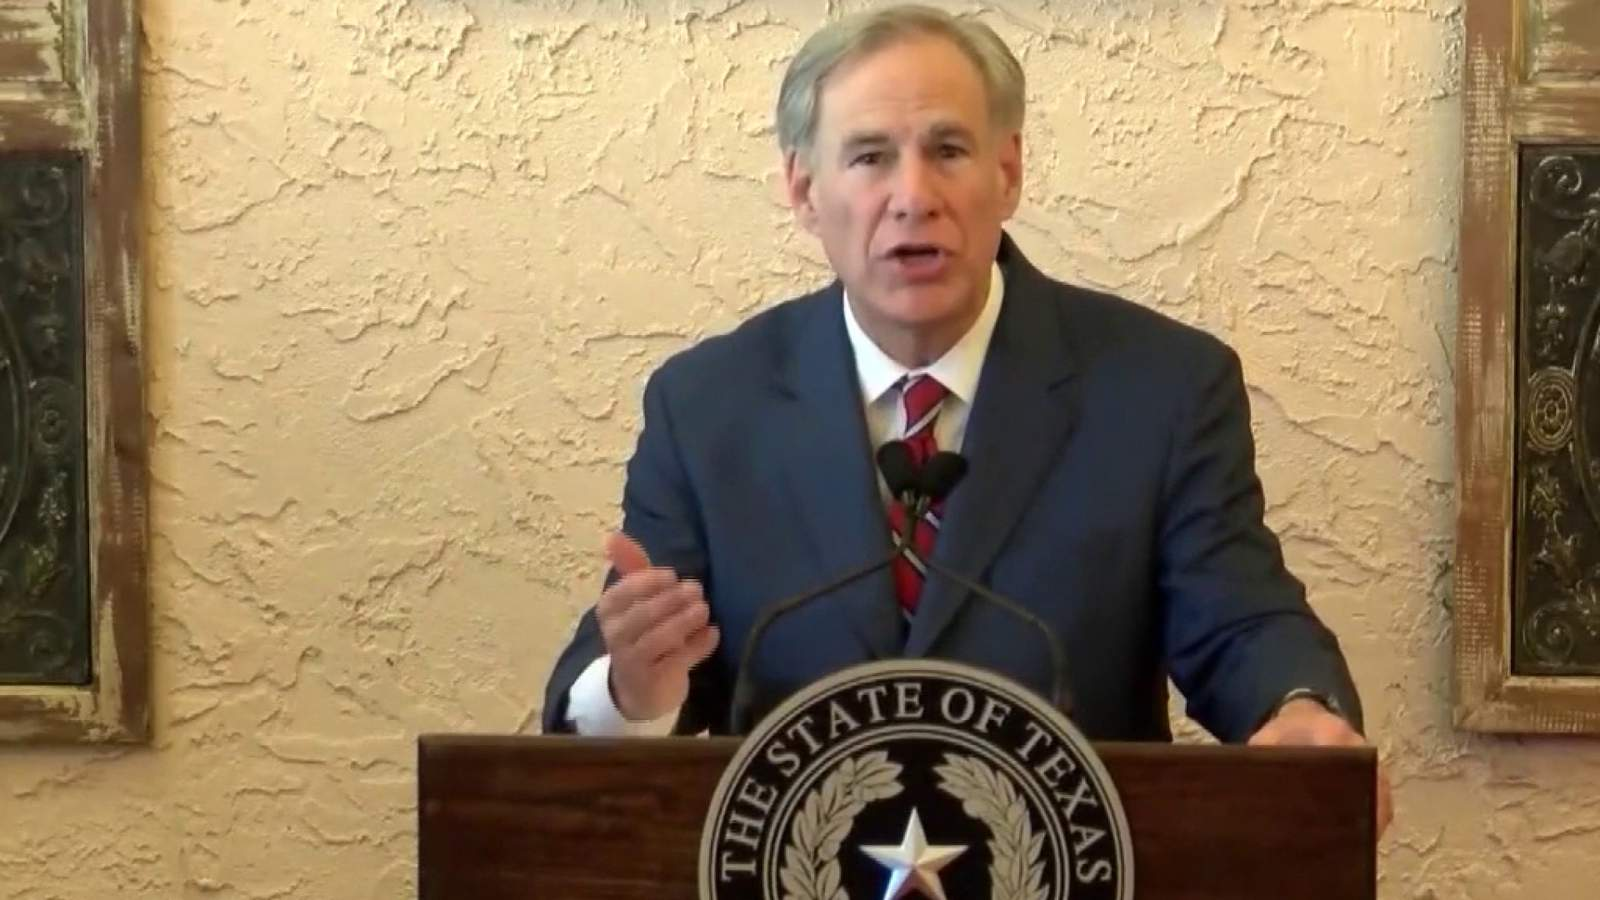 'It is now time to open Texas 100%': Texas Gov. Greg Abbott reverses statewide pandemic orders